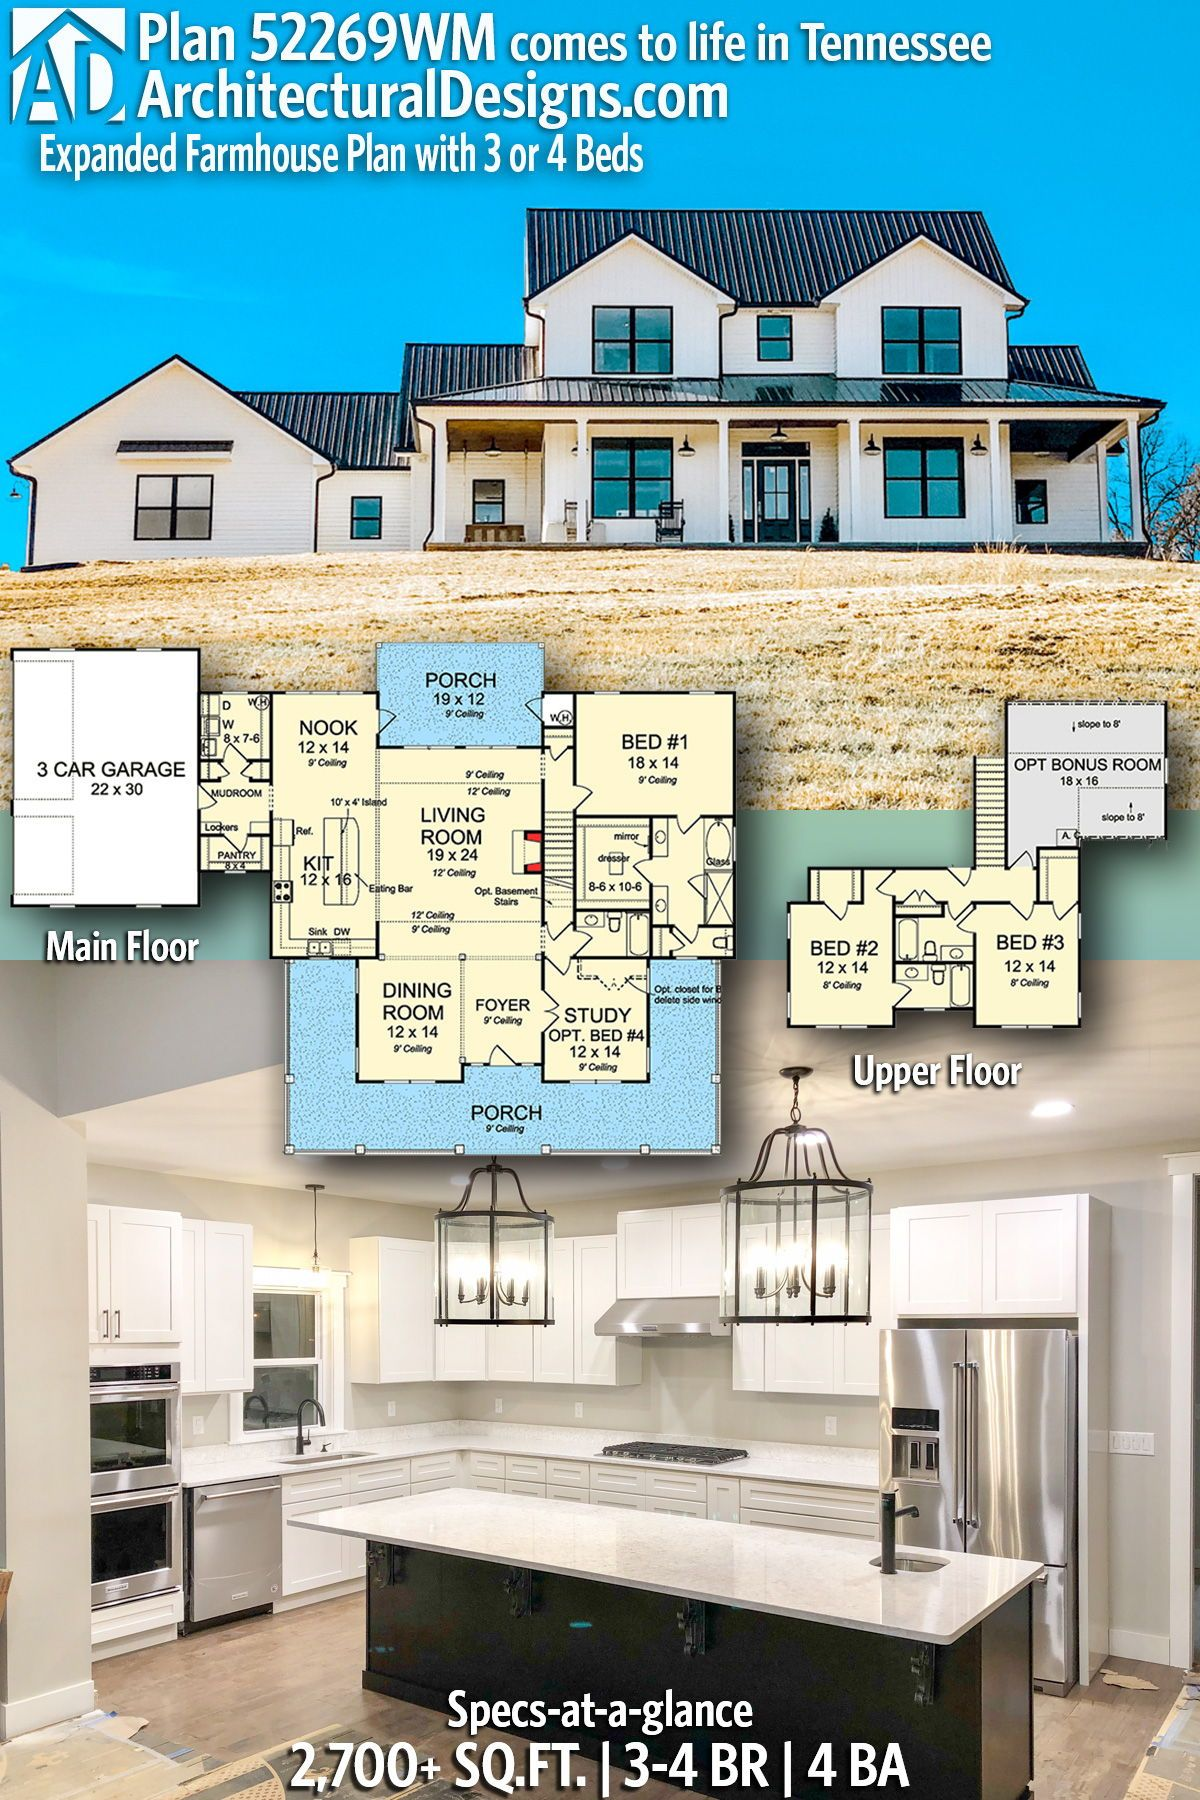 Architectural designs farmhouse plan wm client built in tennessee bedrooms dream home also best floor plans images house rh pinterest